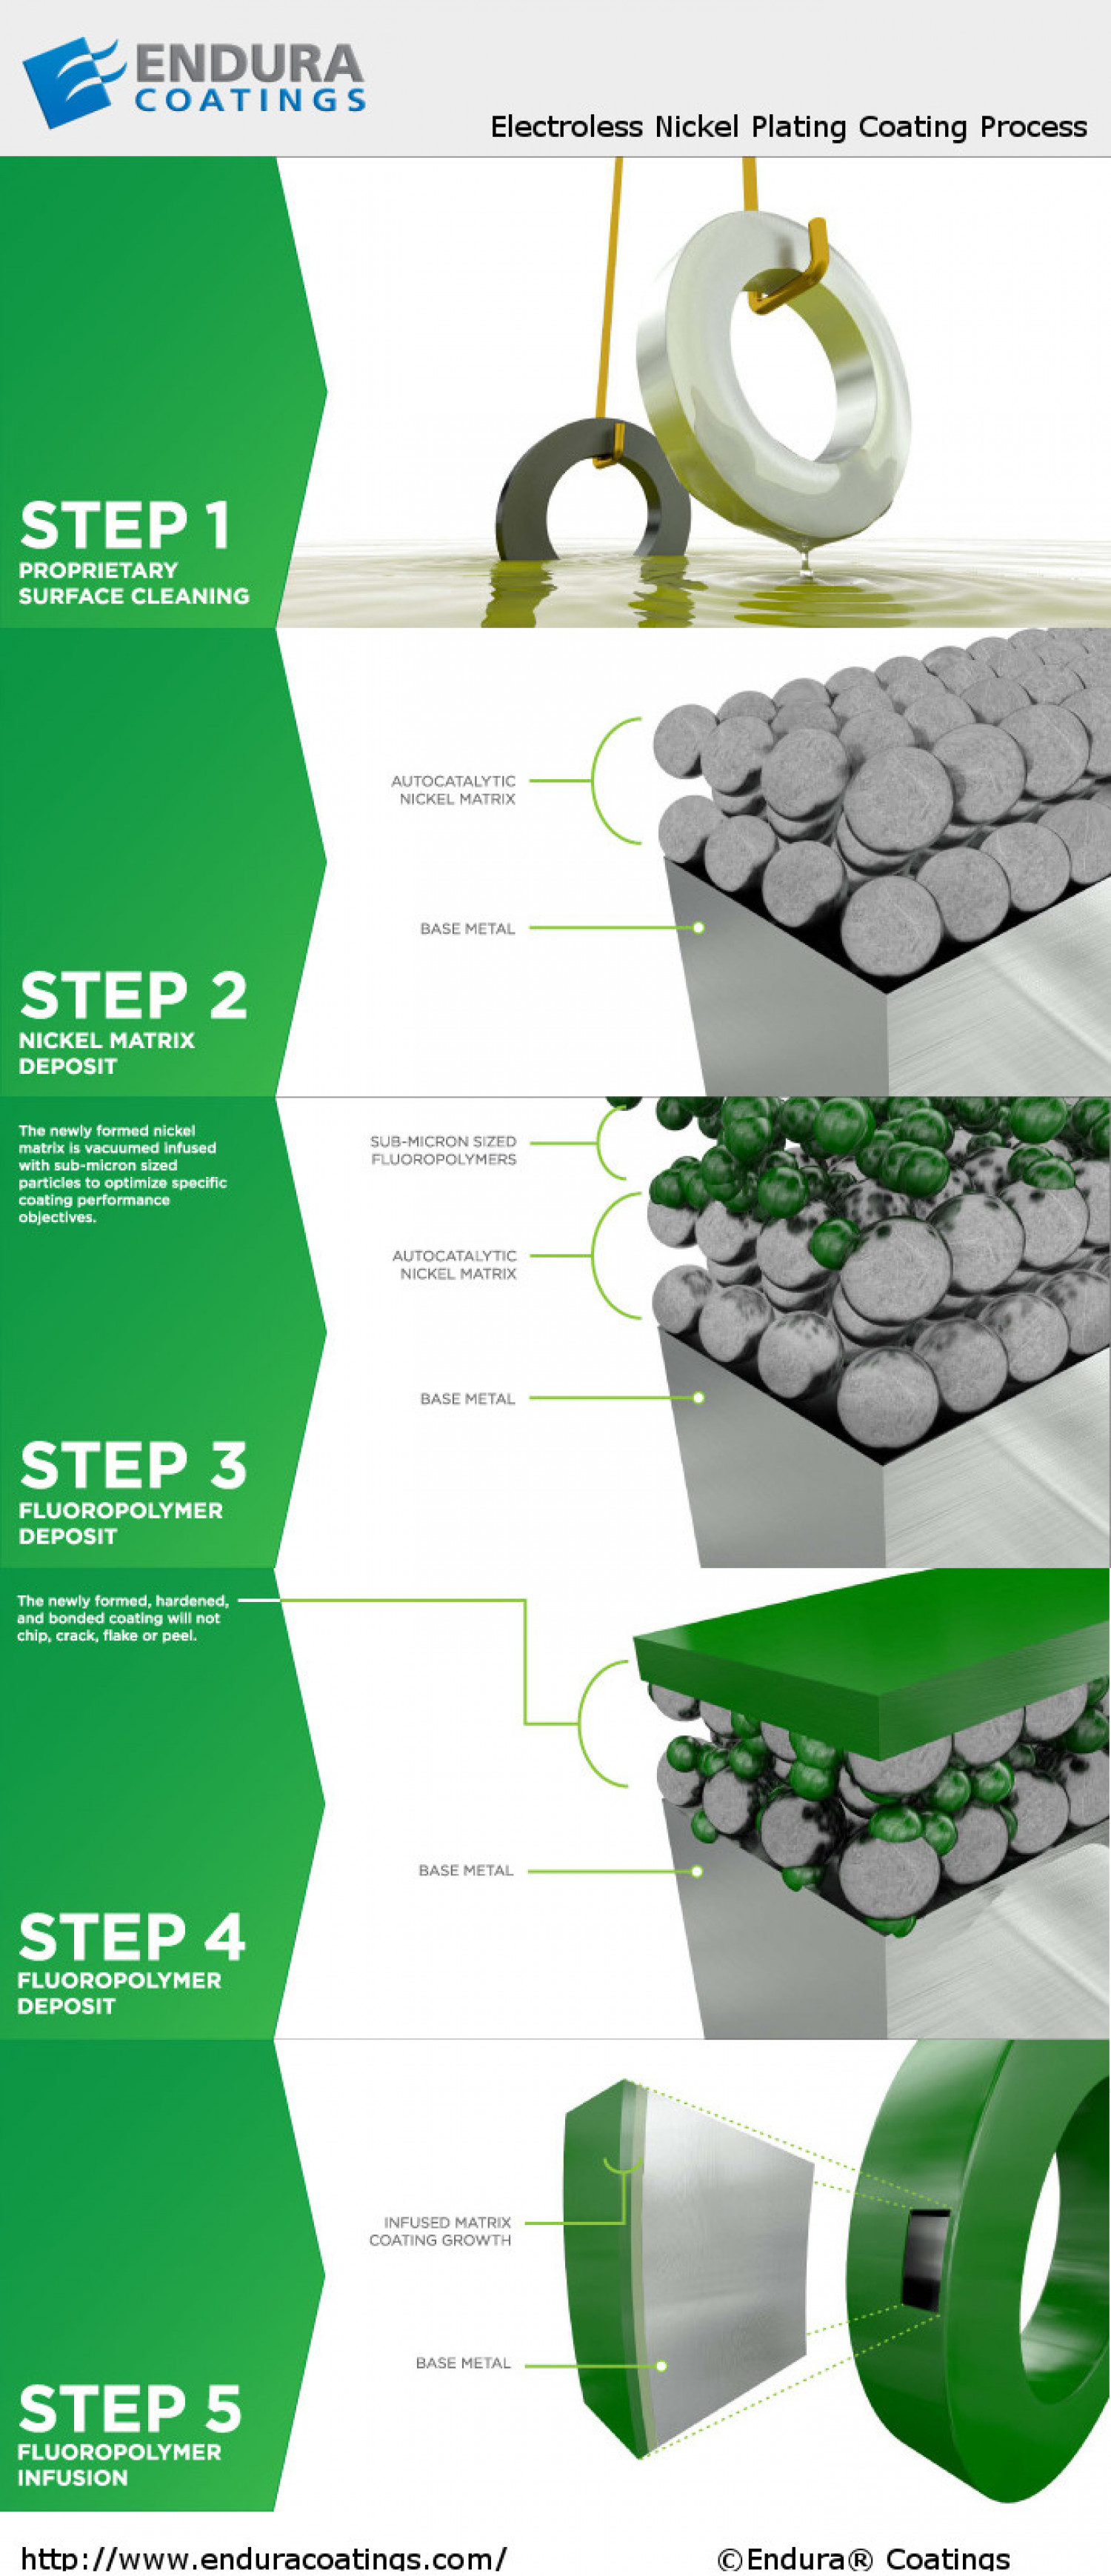 Endura Coatings - The Electroless Nickel Coating Process Infographic